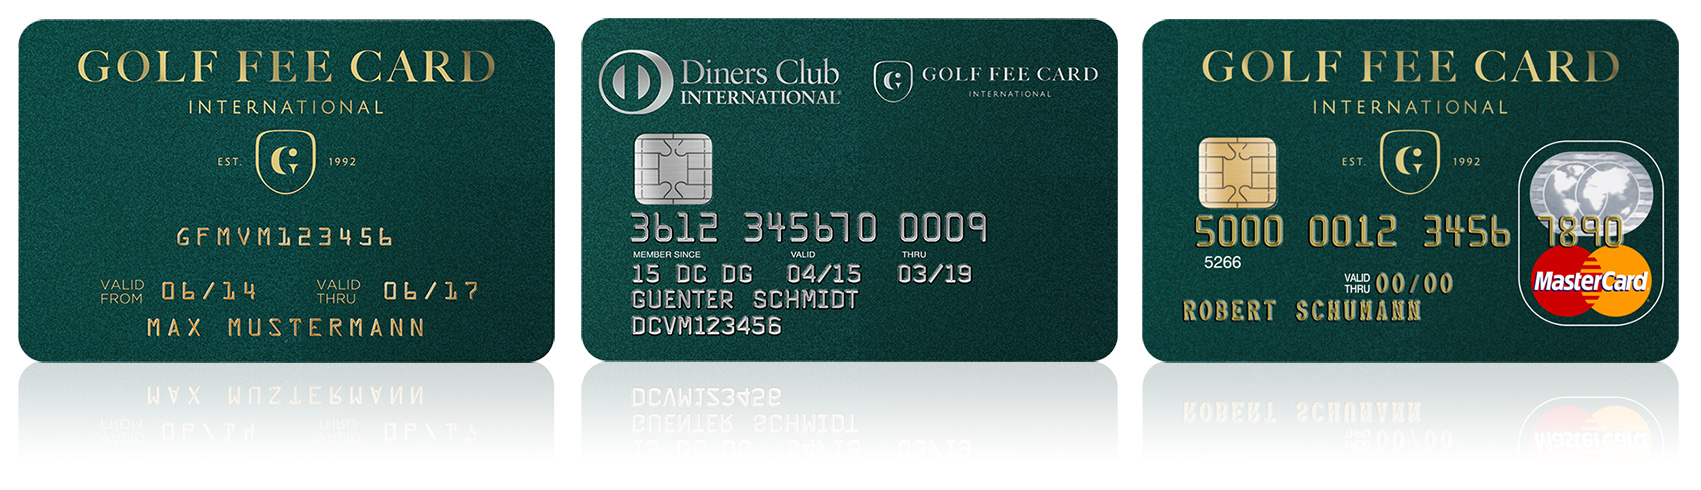 golf_fee_cards